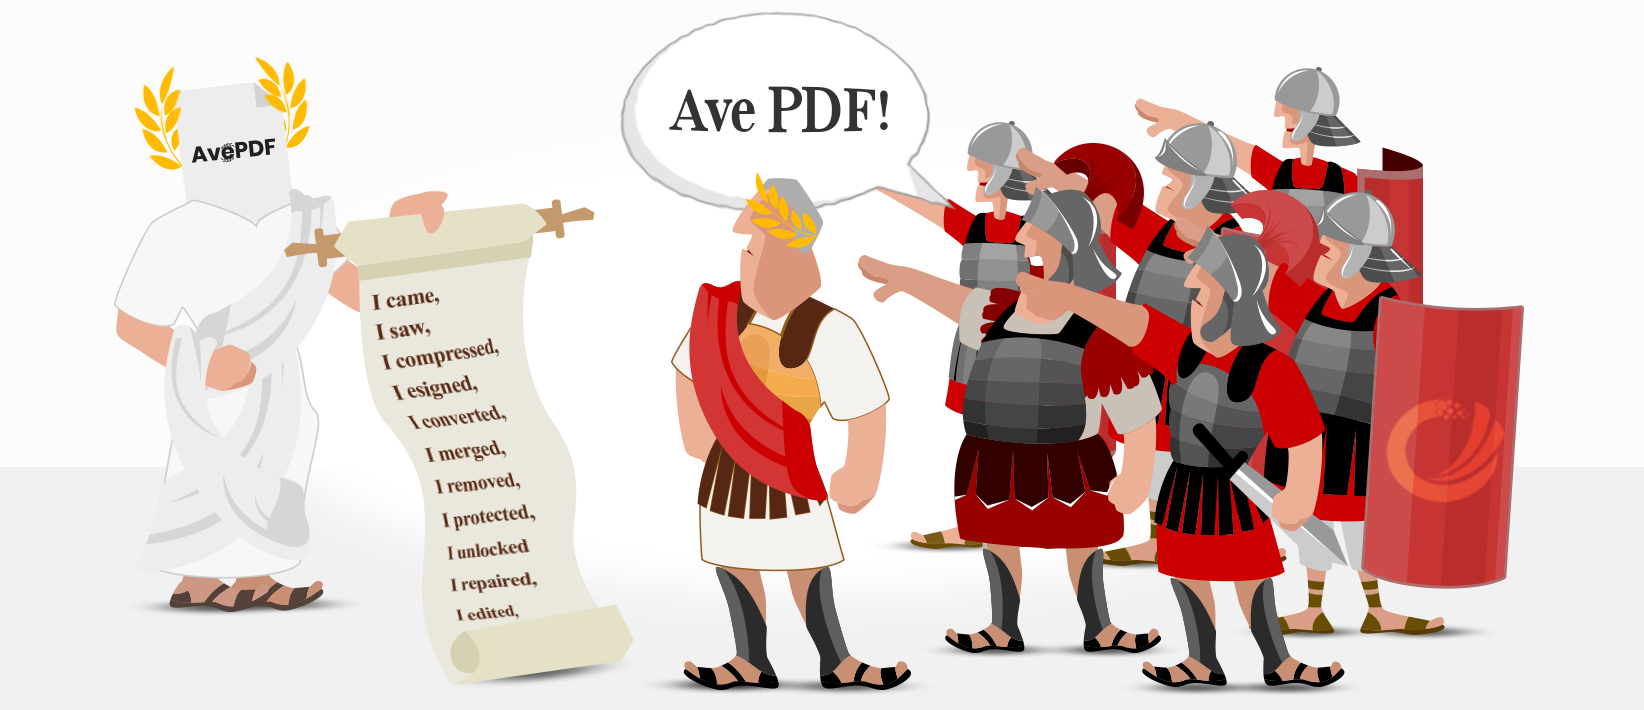 AvePDF - launch